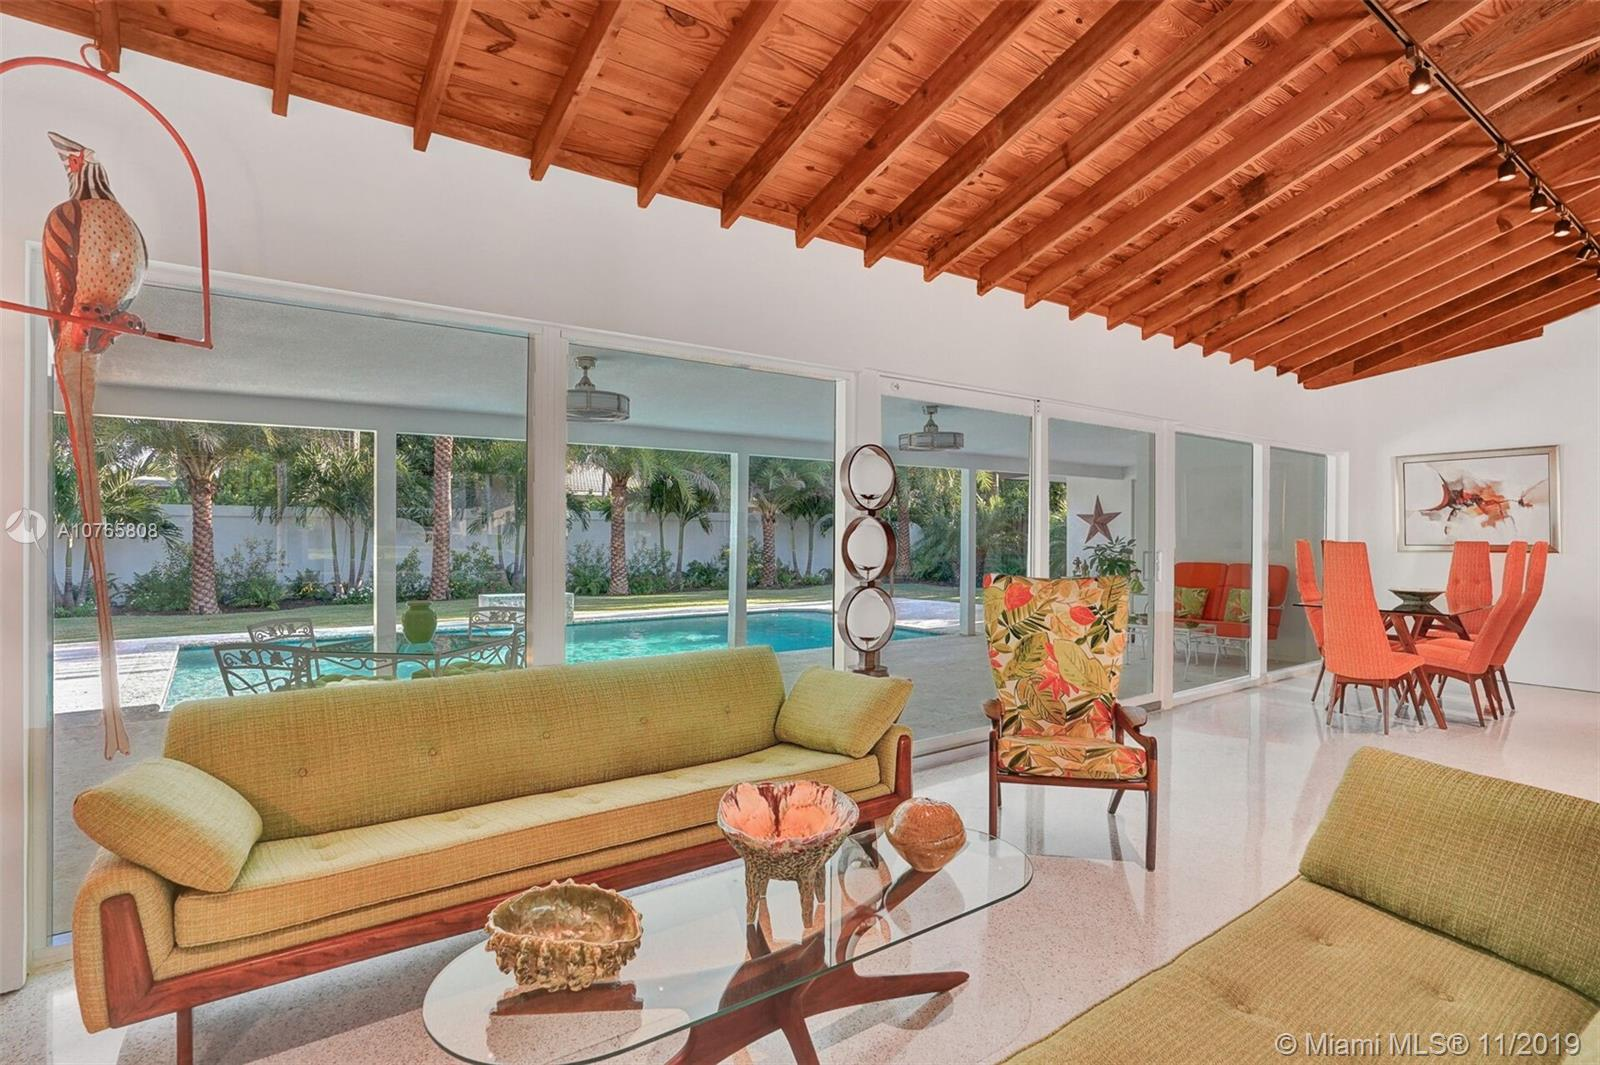 AS FEATURED IN THIS MONTHS TROPIC MAGAZINE! Museum-quality renovation in this mid-century modern 3 bed 3 bath residence.Marvel at the 13 ft cathedral, wood-beamed,ceilings & polished terrazzo floors.No expense has been spared in this incomparable residence. Open chefs kitchen includes a Wolf gas range,Kitchen-Aid applic and Mahogany cabinets. Split bedroom plan positions the spacious master suite across from the other 2 bedrooms.Master suite include 2 custom baths.1 boasts a spa-styled soaking tub & shower, the other features a seamless shower.Step from the master suite onto an over-sized covered patio adjoining the coral rock paver decked resort-style pool.Custom landscape lighting highlights tropical foliage. All New Plumbing, Electrical, Windows!